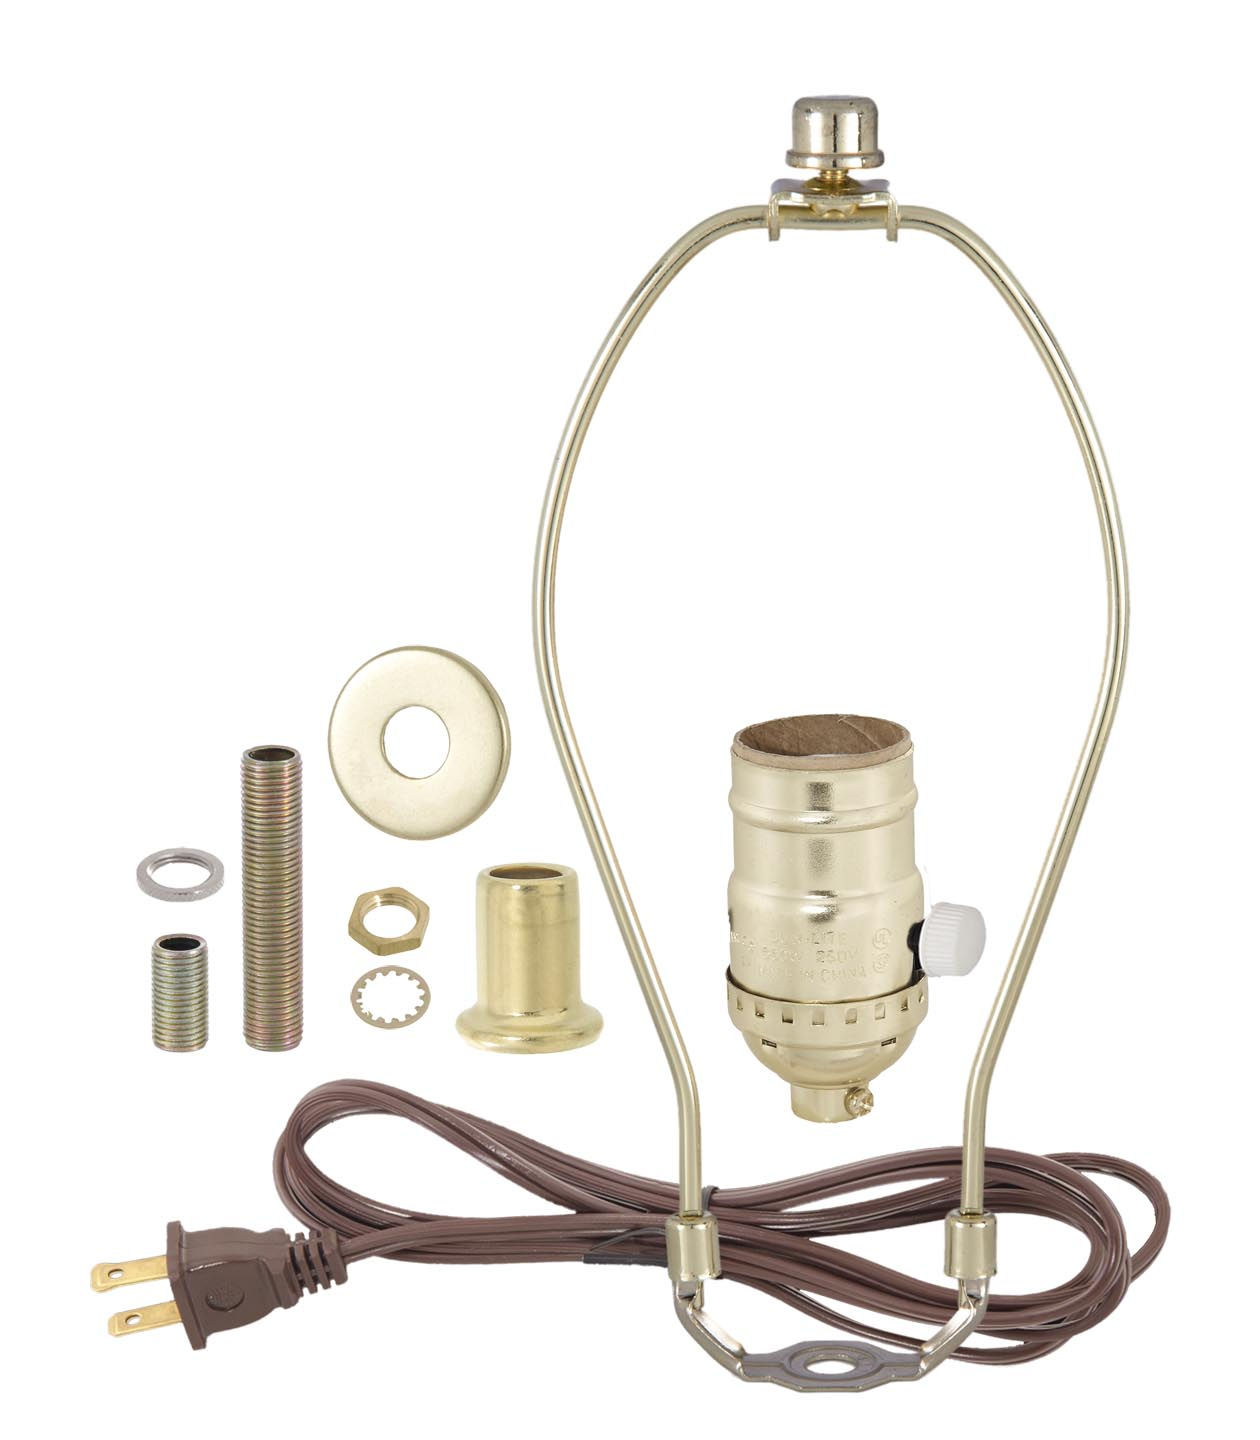 Brass table lamp wiring kit with full range dimmer socket 30554p10 brass table lamp wiring kit with full range dimmer socket 8 ft 182 spt 1 cord set lamp harp finial riser nut 58 inch nipple 2 inch nipple greentooth